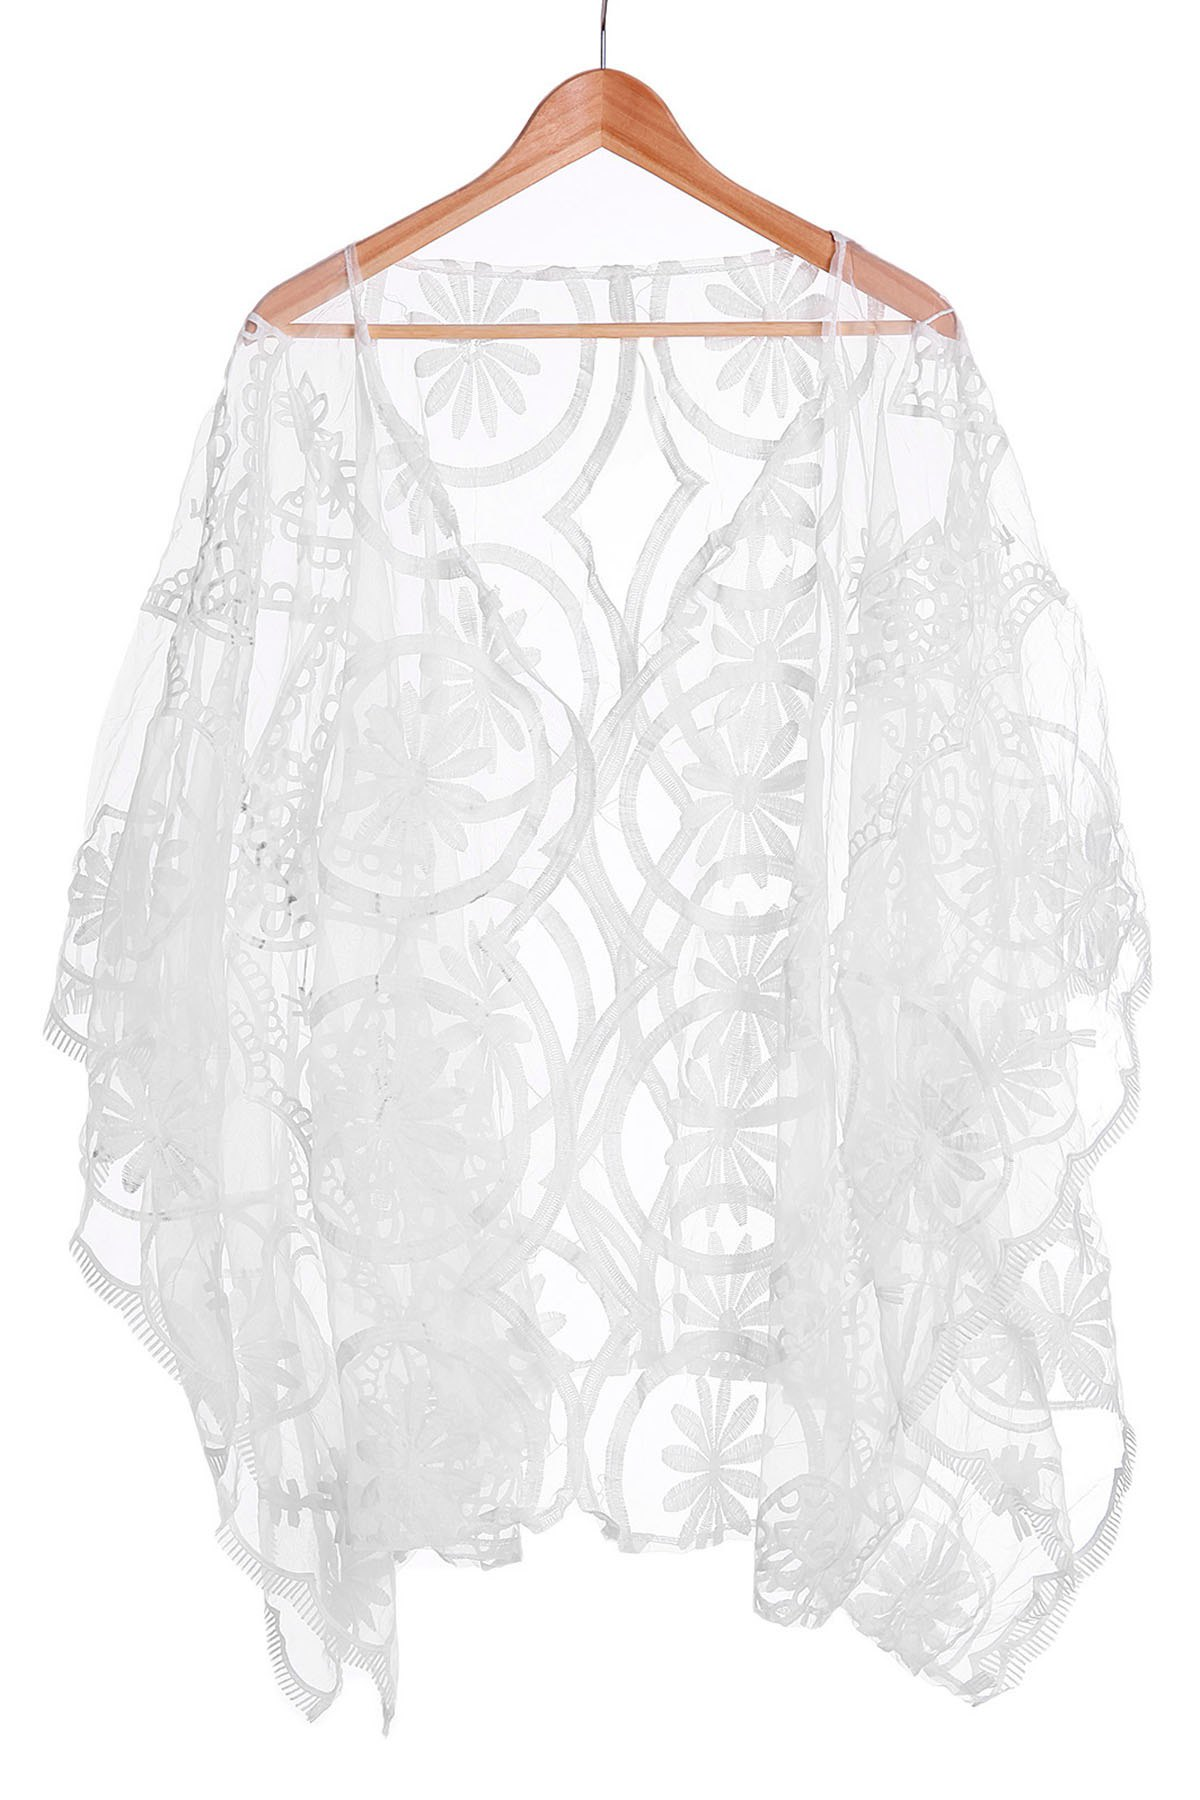 Alluring V-Neck 3/4 Sleeve Hollow Out See-Through Women's Cover-Up - WHITE M